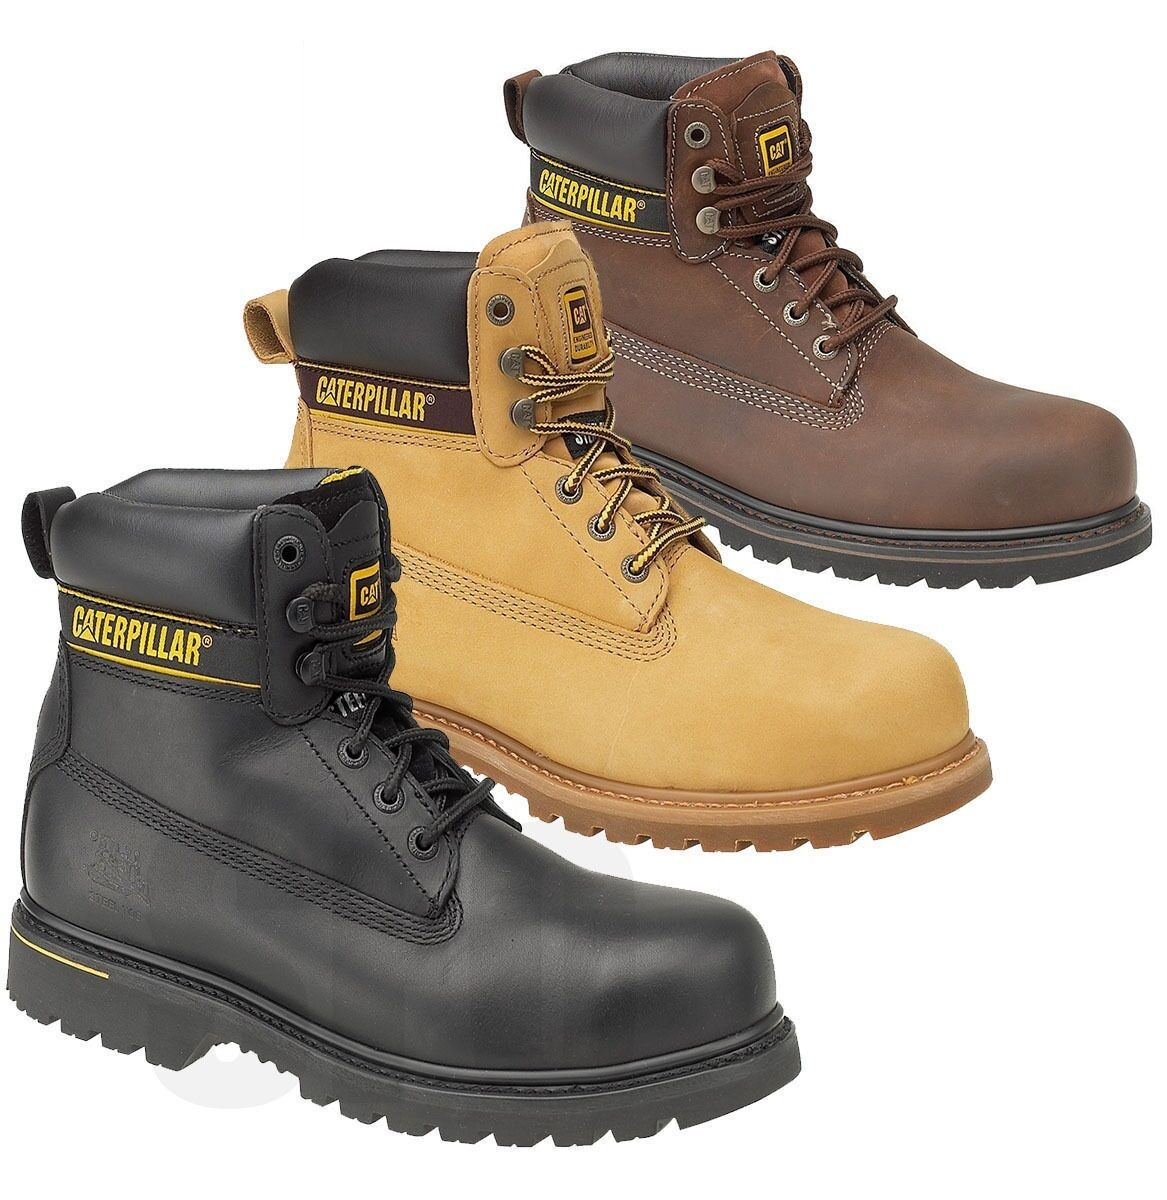 Hombre Caterpillar CAT SAFETY WIDE STEEL TOE CAP SAFETY CAT WORK Zapatos TRAINER botas SZ 6-15 022c3e